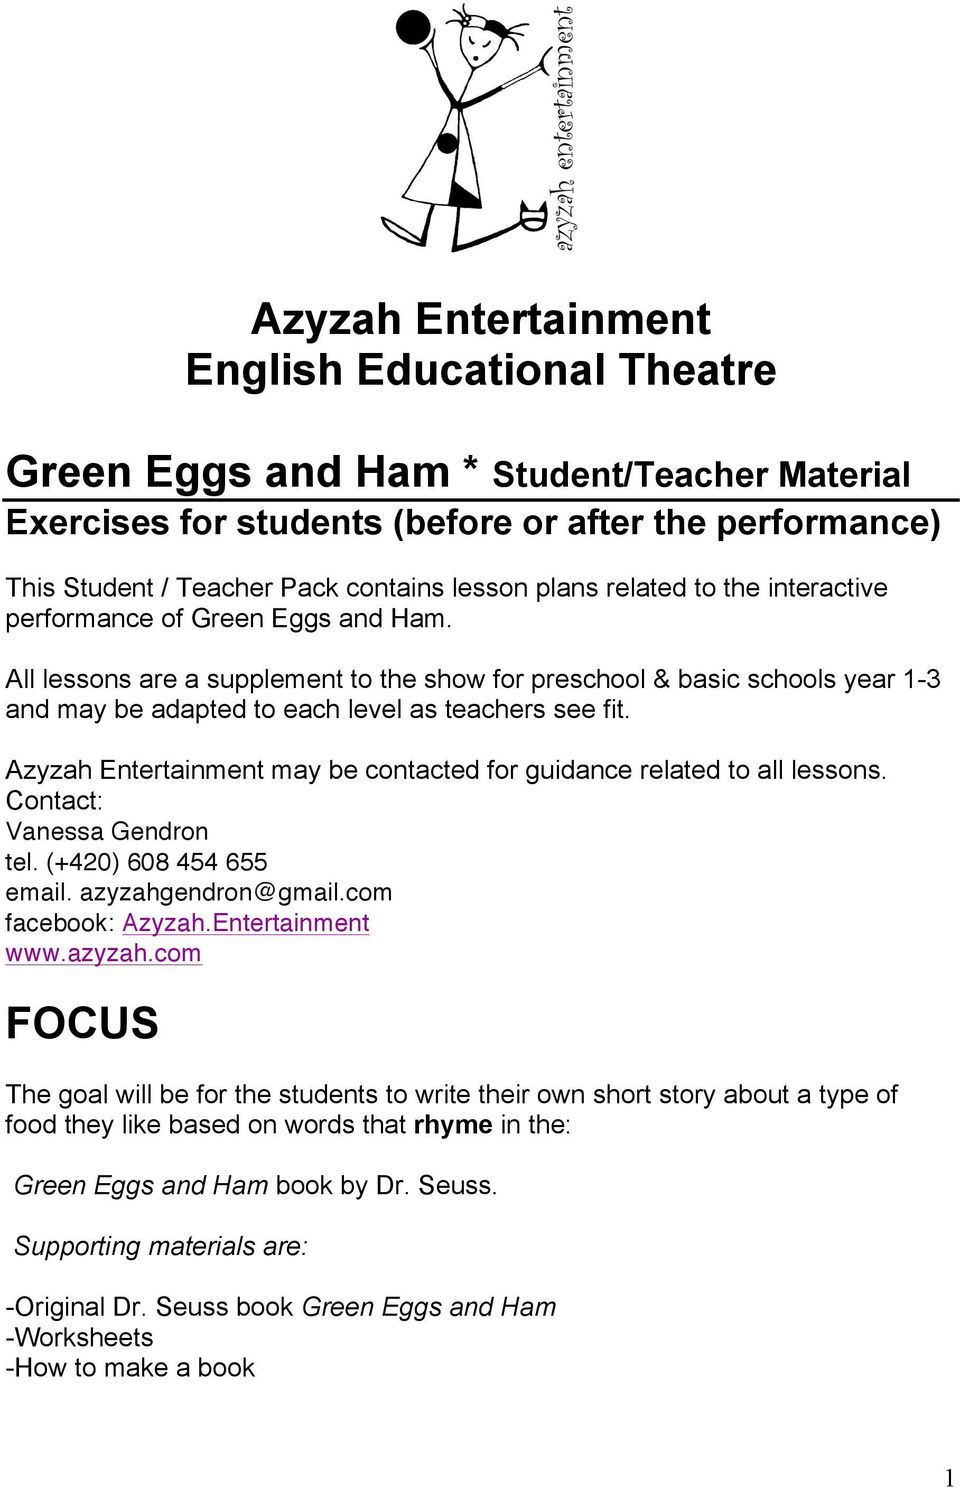 medium resolution of Azyzah Entertainment English Educational Theatre - PDF Free Download